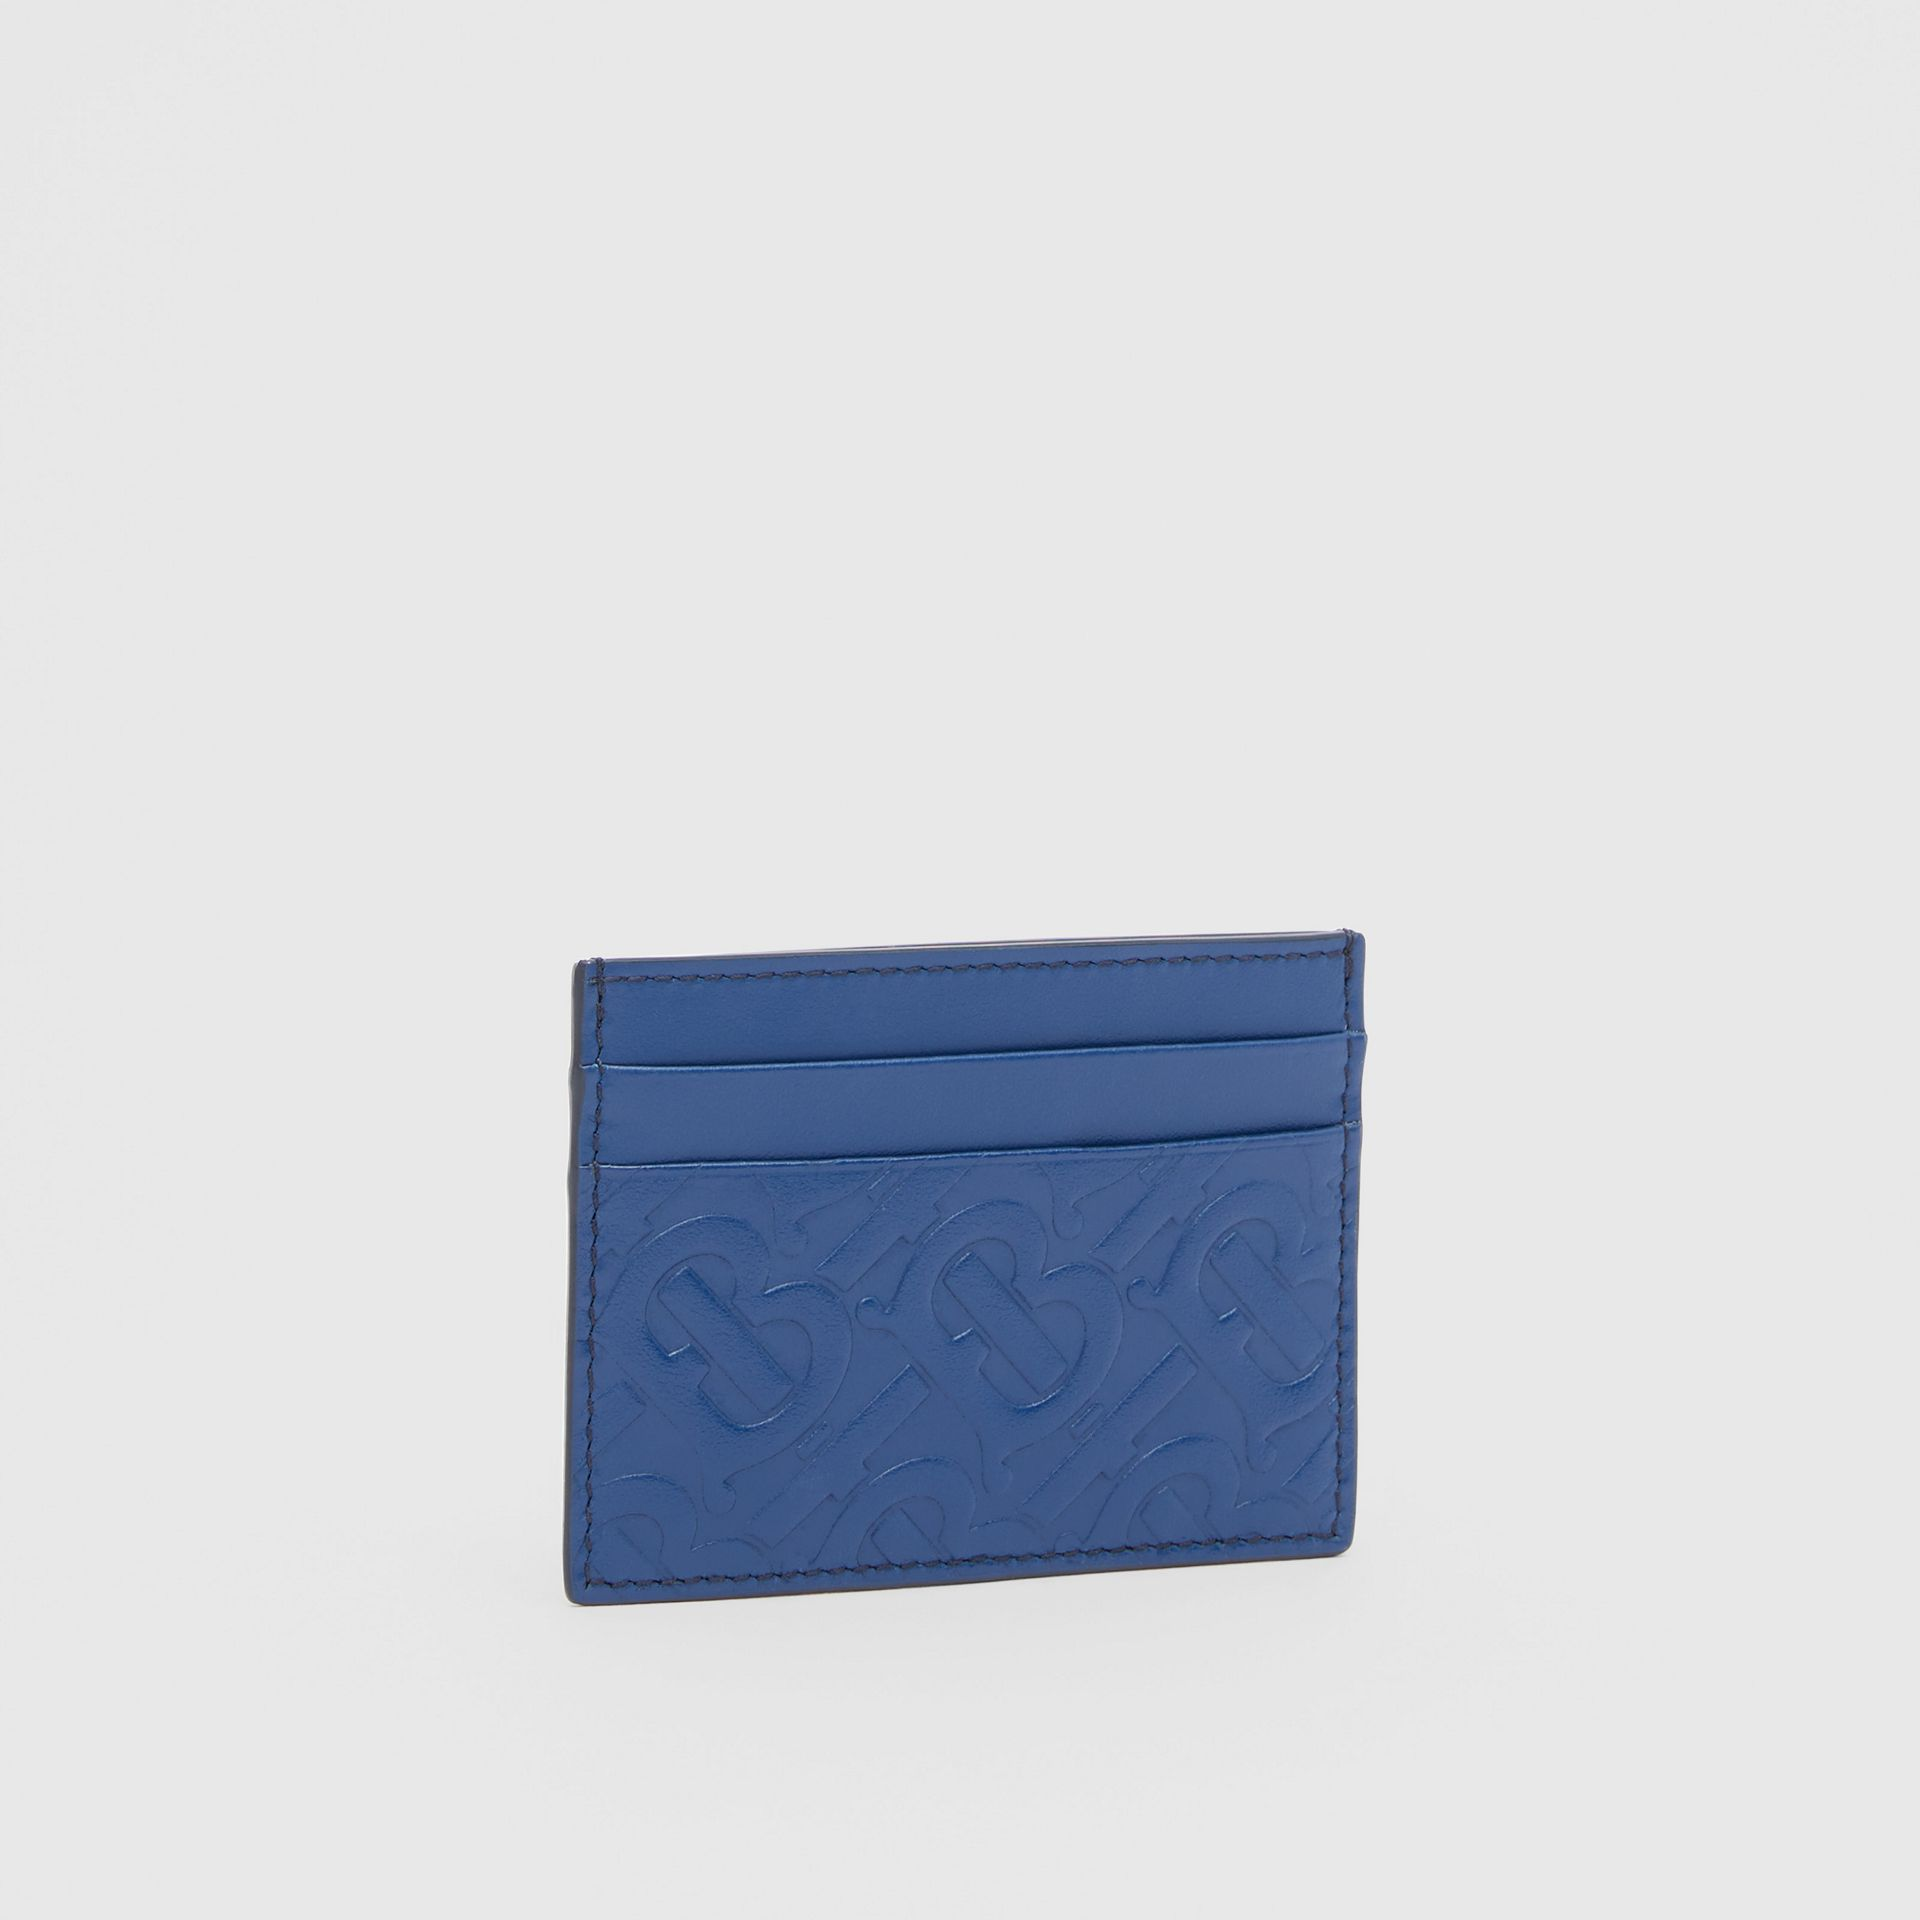 Monogram Leather Card Case in Pale Canvas Blue - Men | Burberry United States - gallery image 3